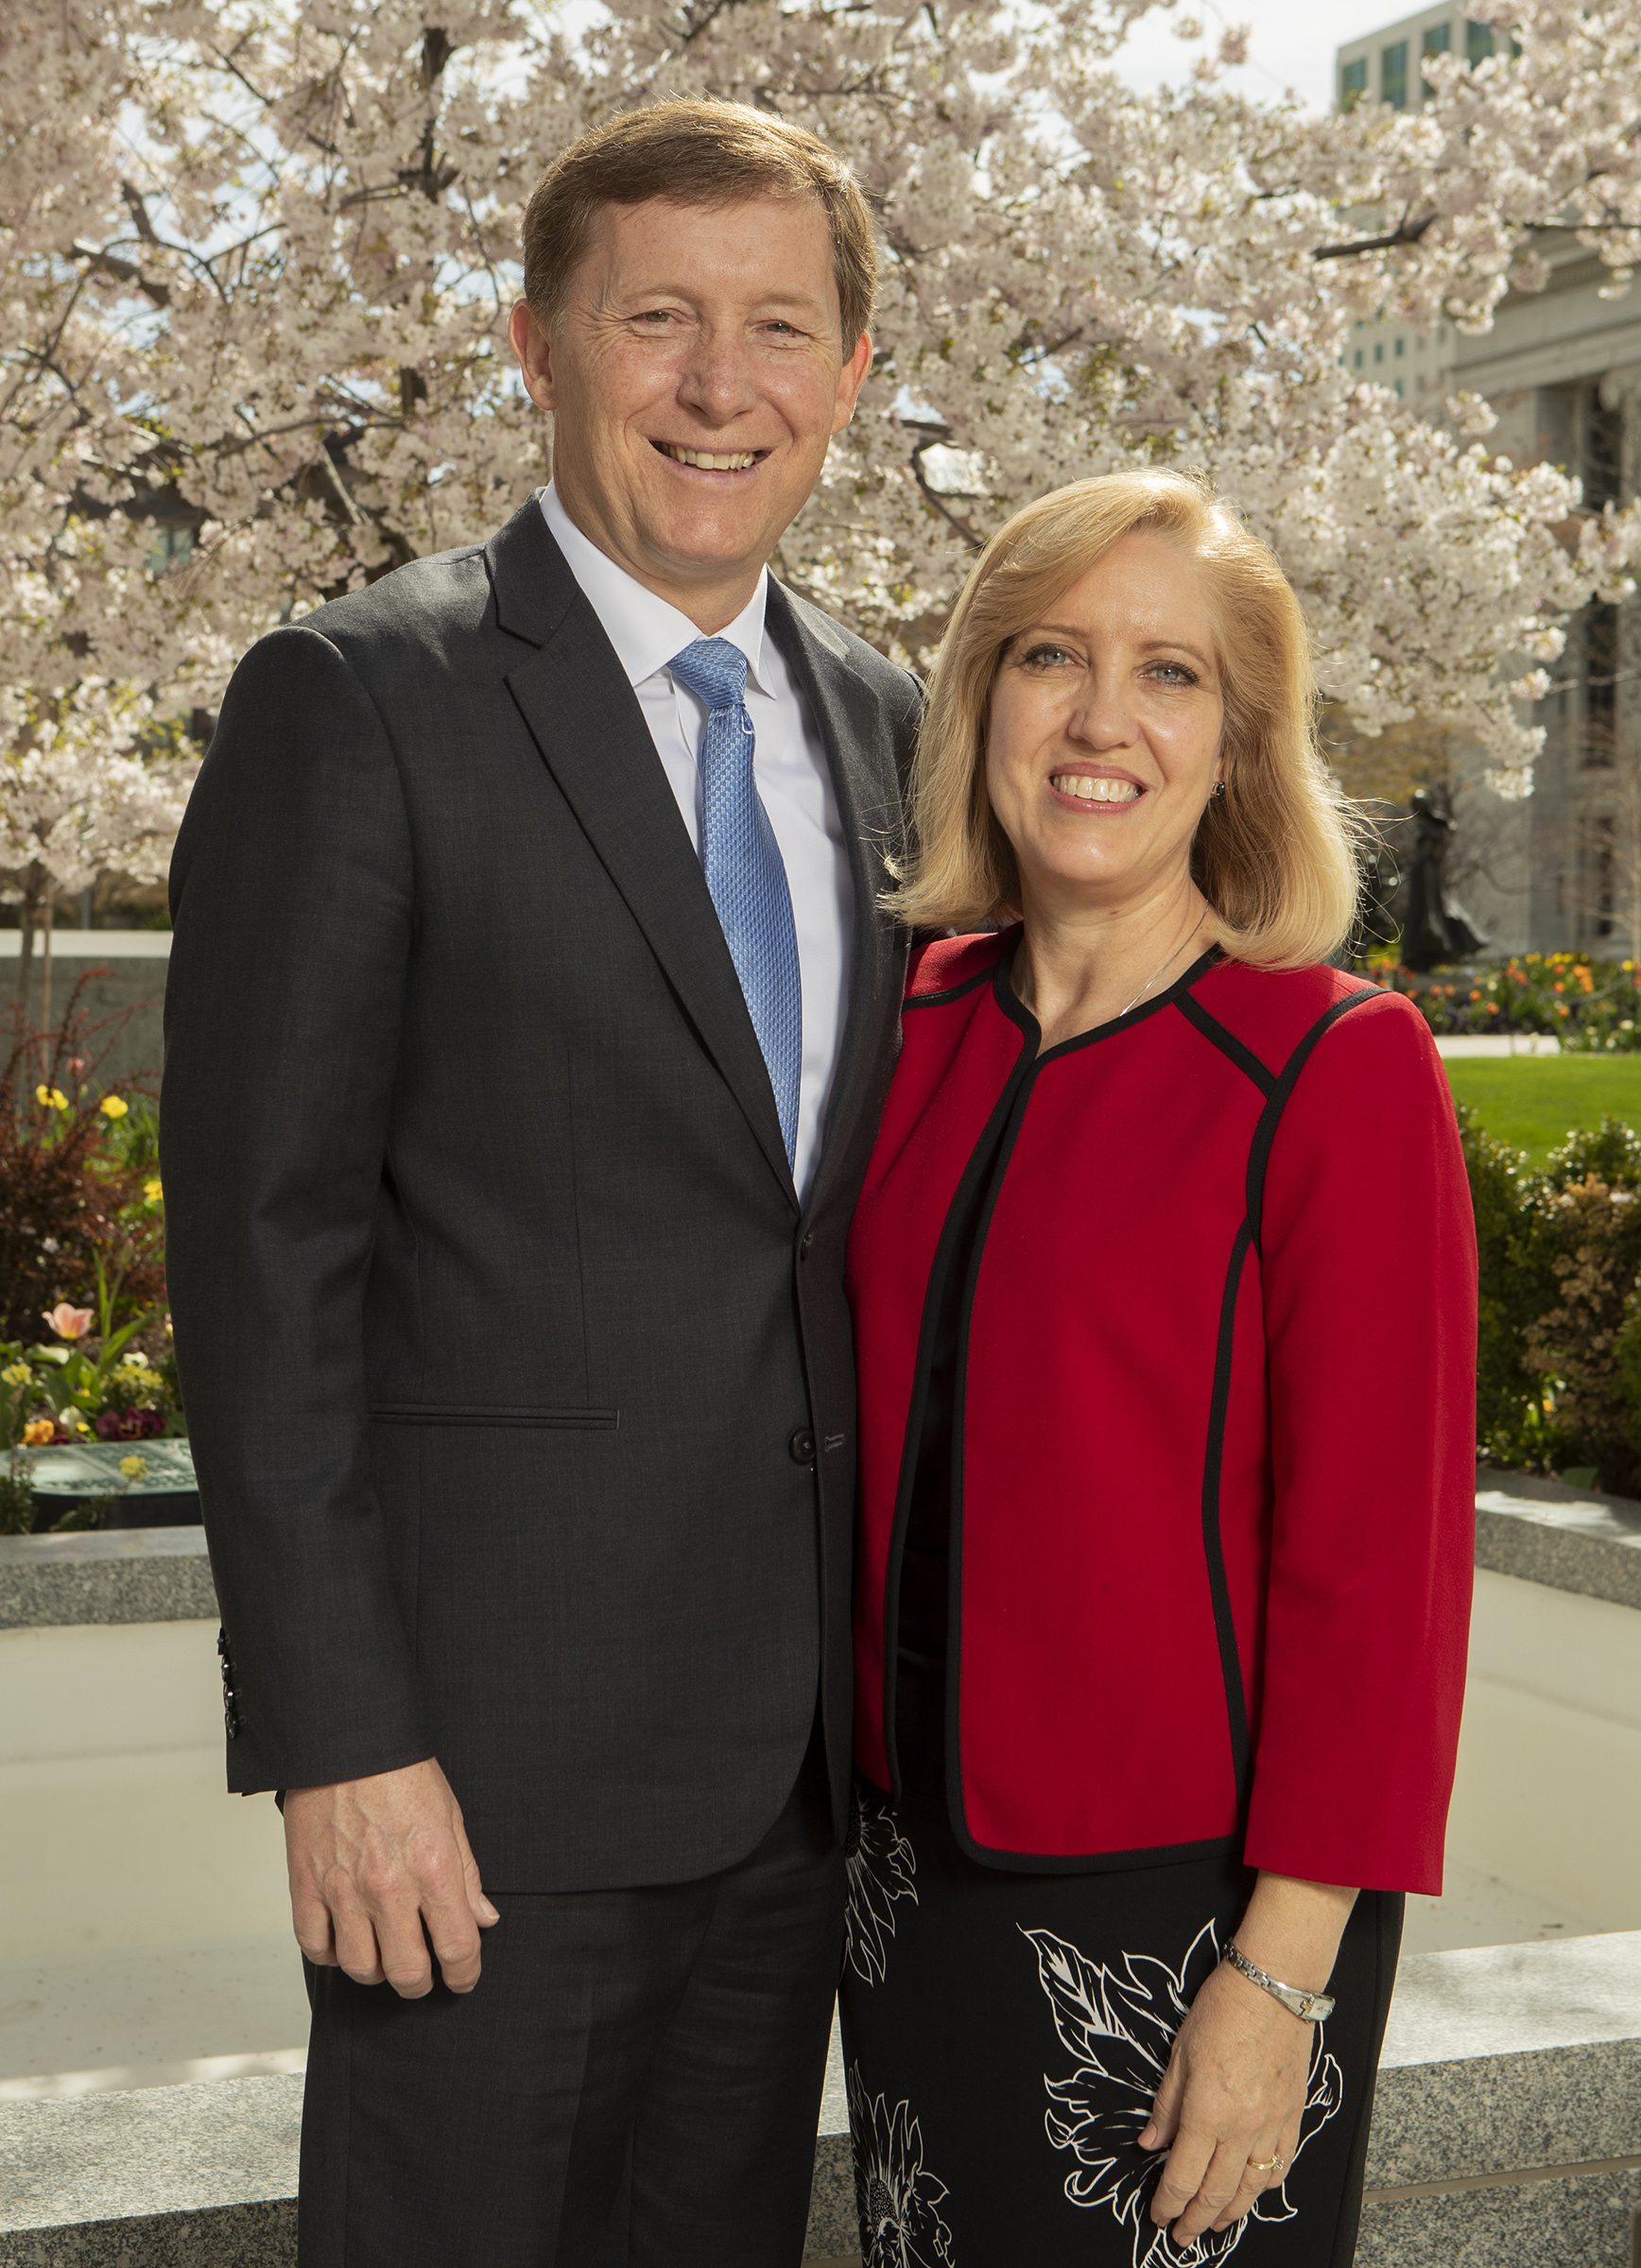 Elder L. Todd Budge and Sister Lori Capener Budge pose for a photo at the Church Office Building in Salt Lake City on Monday, April 8, 2019. Elder Budge was sustained as a General Authority Seventy in the April 2019 general conference.